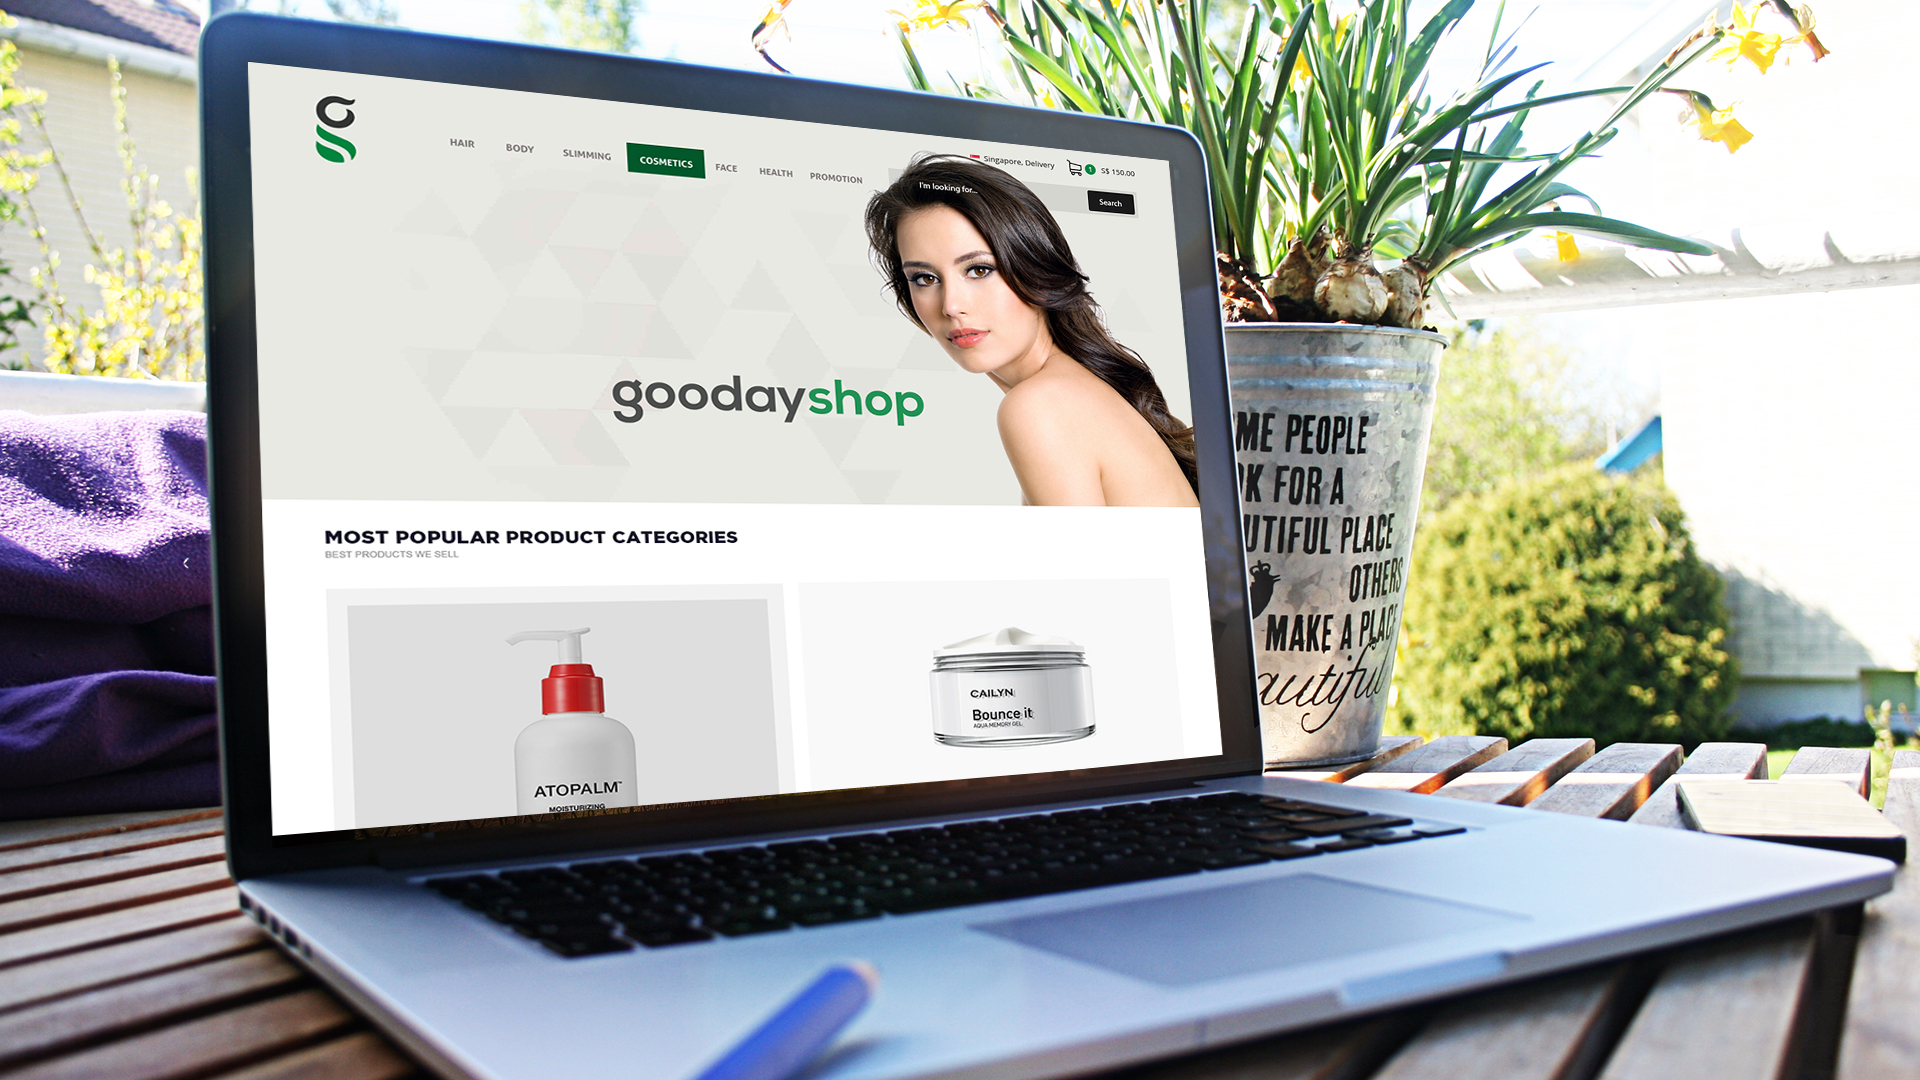 gooday-website